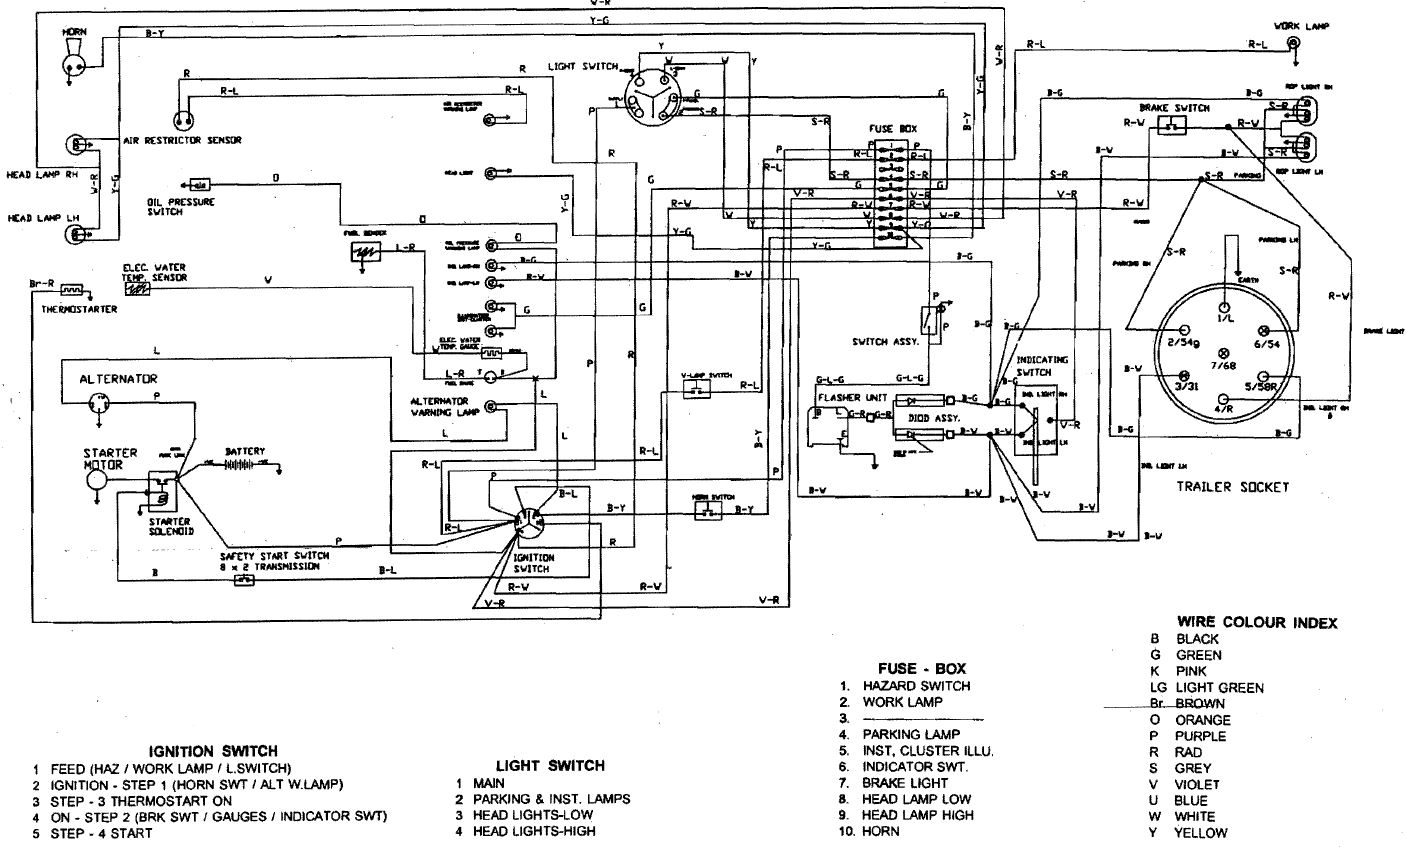 20158463319_b82d524c3d_o ignition switch wiring diagram case 530 tractor wiring diagram at honlapkeszites.co